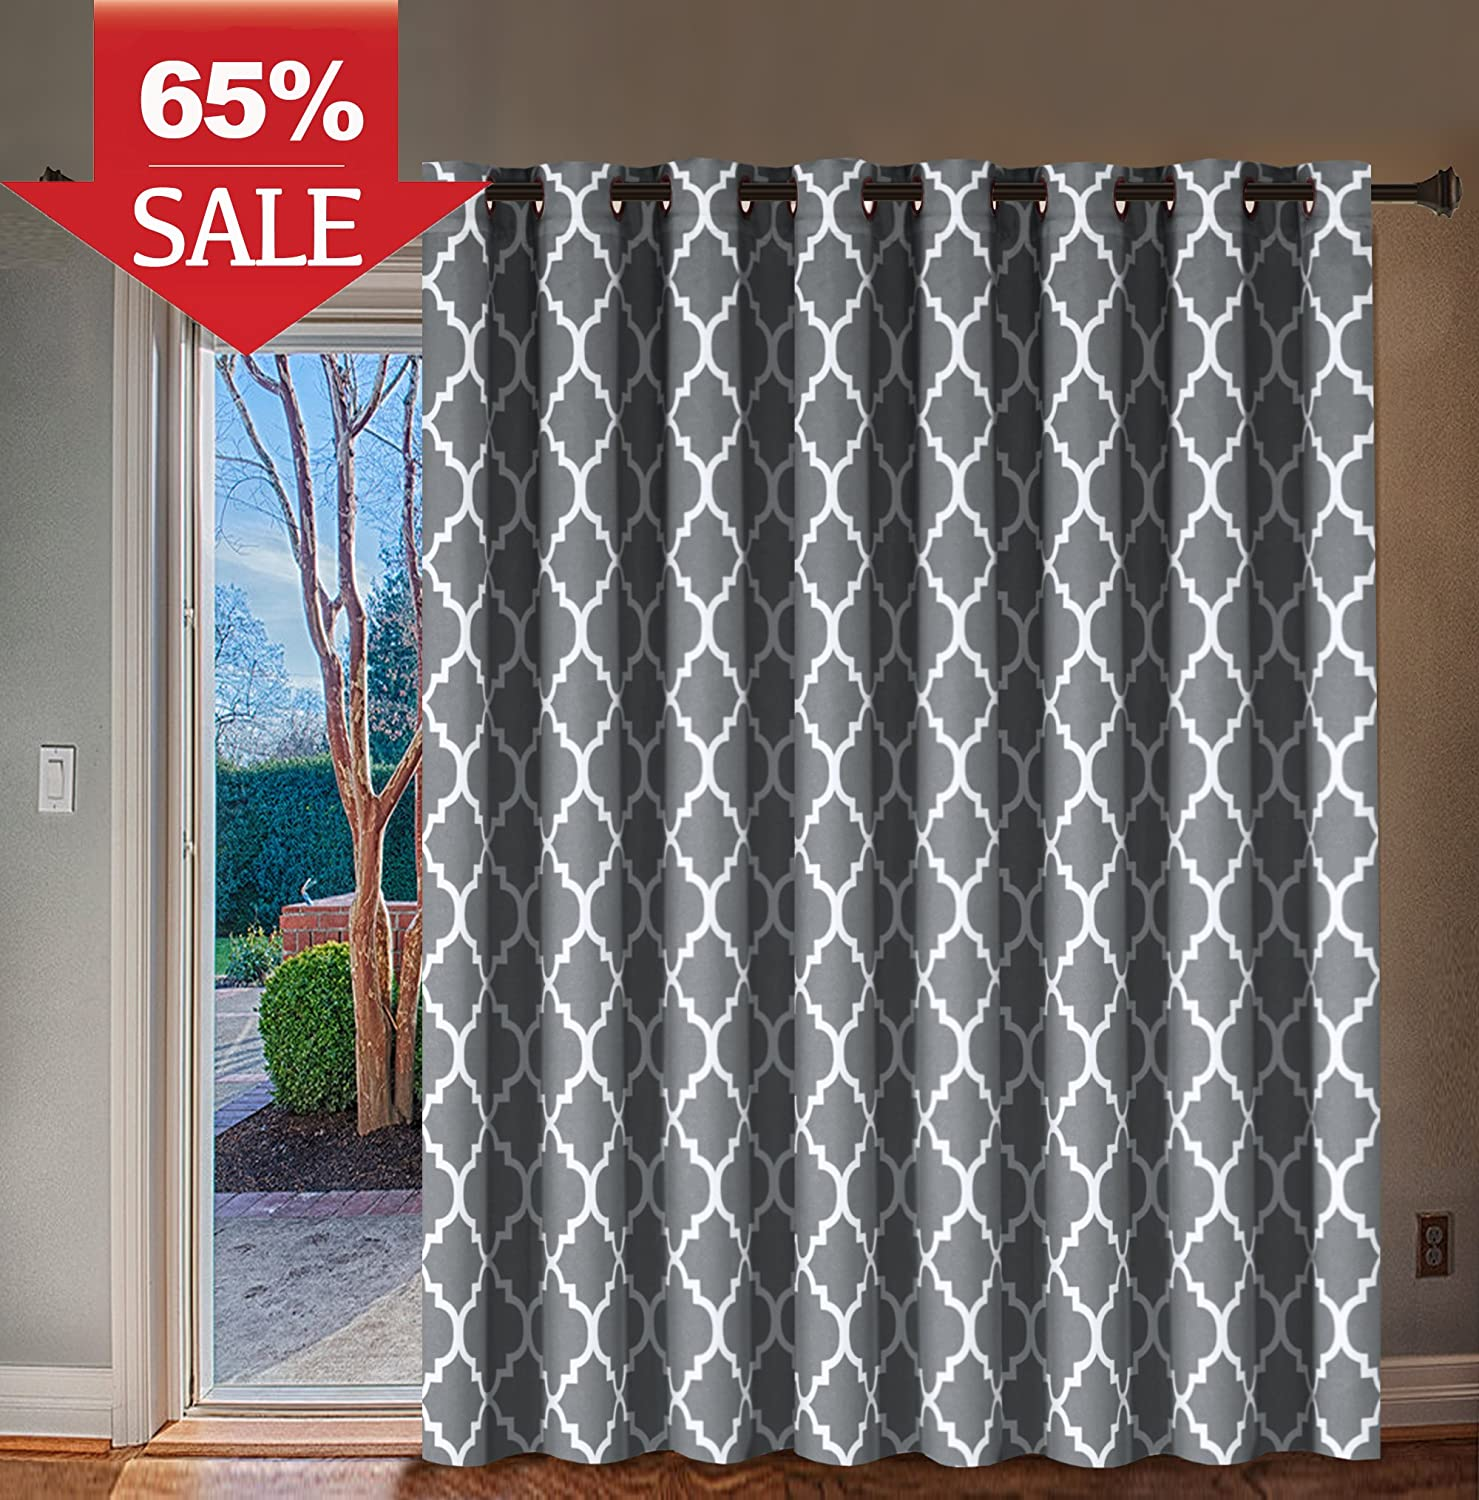 Printed Blackout Curtain Room Darkening Rod Pocket Panel Drapes for Short Window, 42 inches Wide by 63 inches Long (Burgundy Red) - Decorative Curtain by H.Versailtex